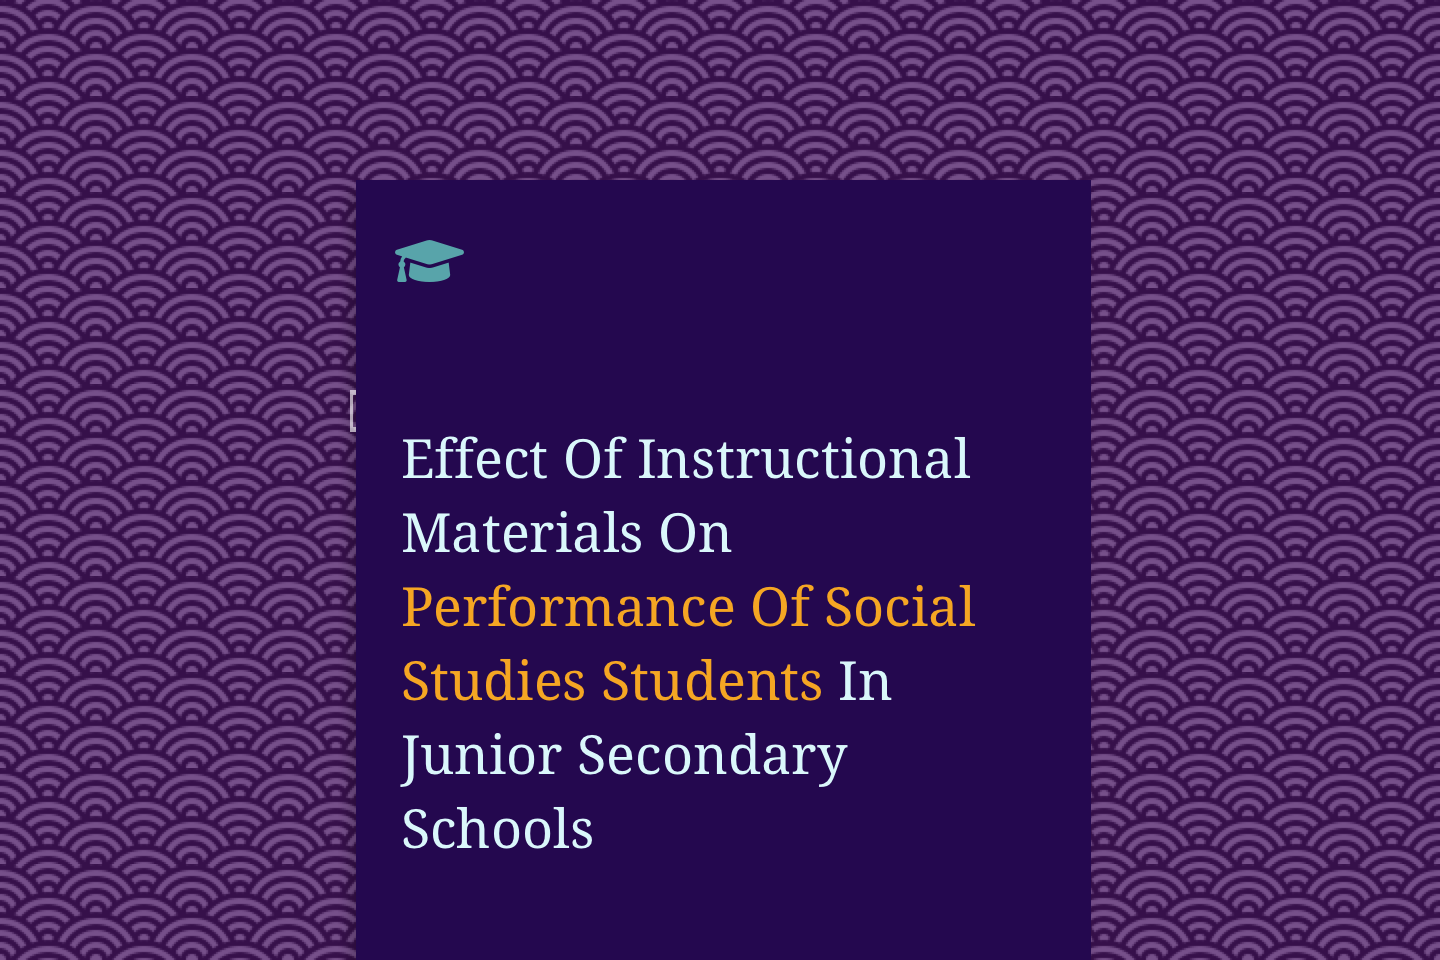 Effect Of Instructional Materials On Performance Of Social Studies Students In Junior Secondary Schools In Umunneochi Local Government Area Abia State Nigeria